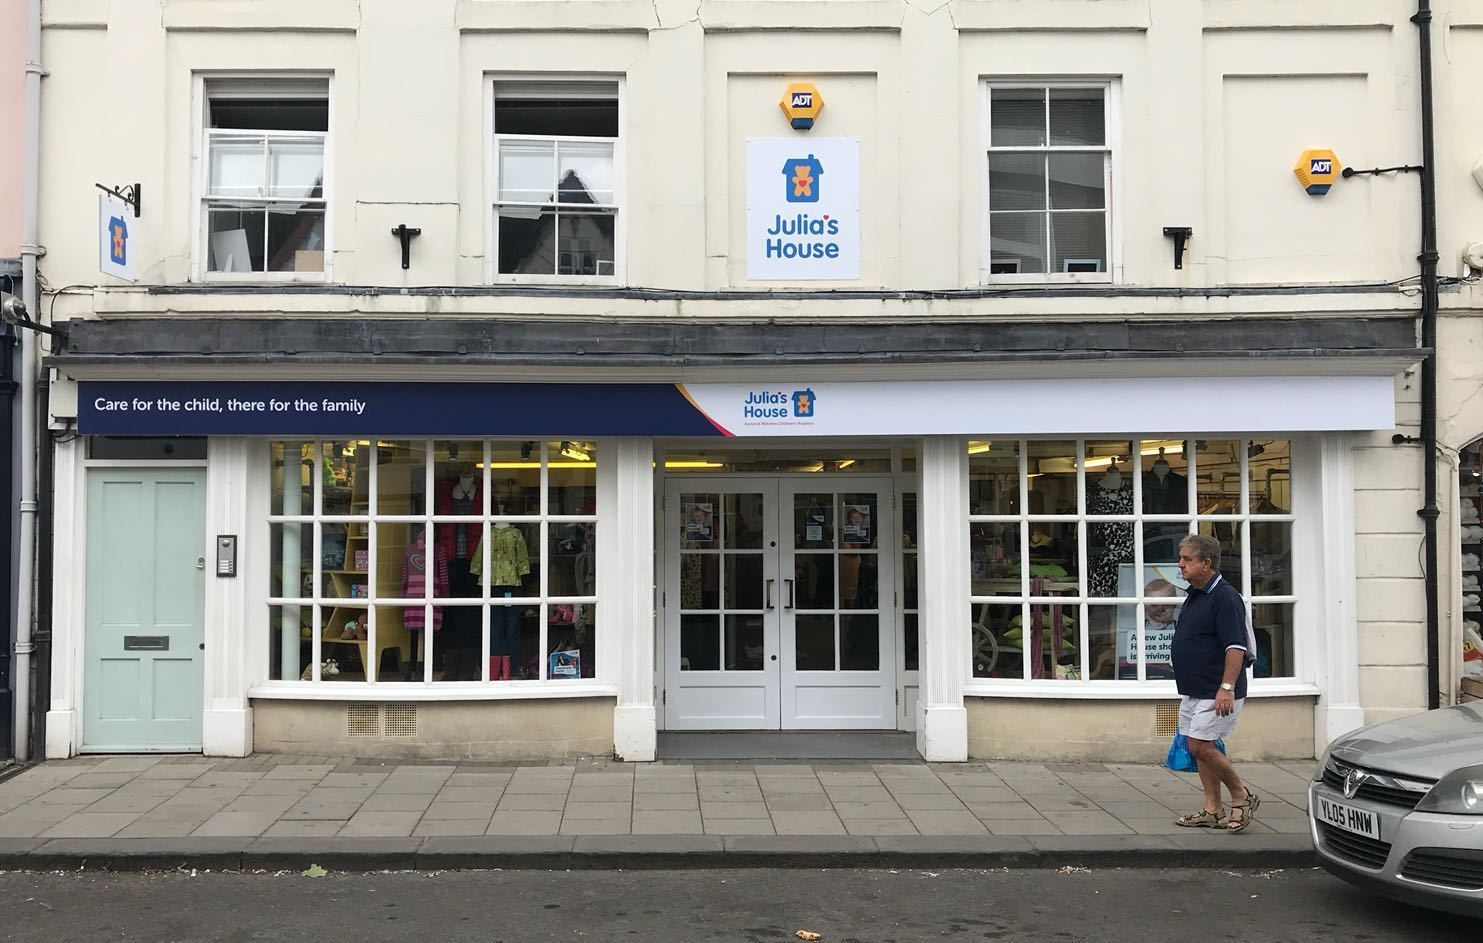 The new Julia's House charity shop